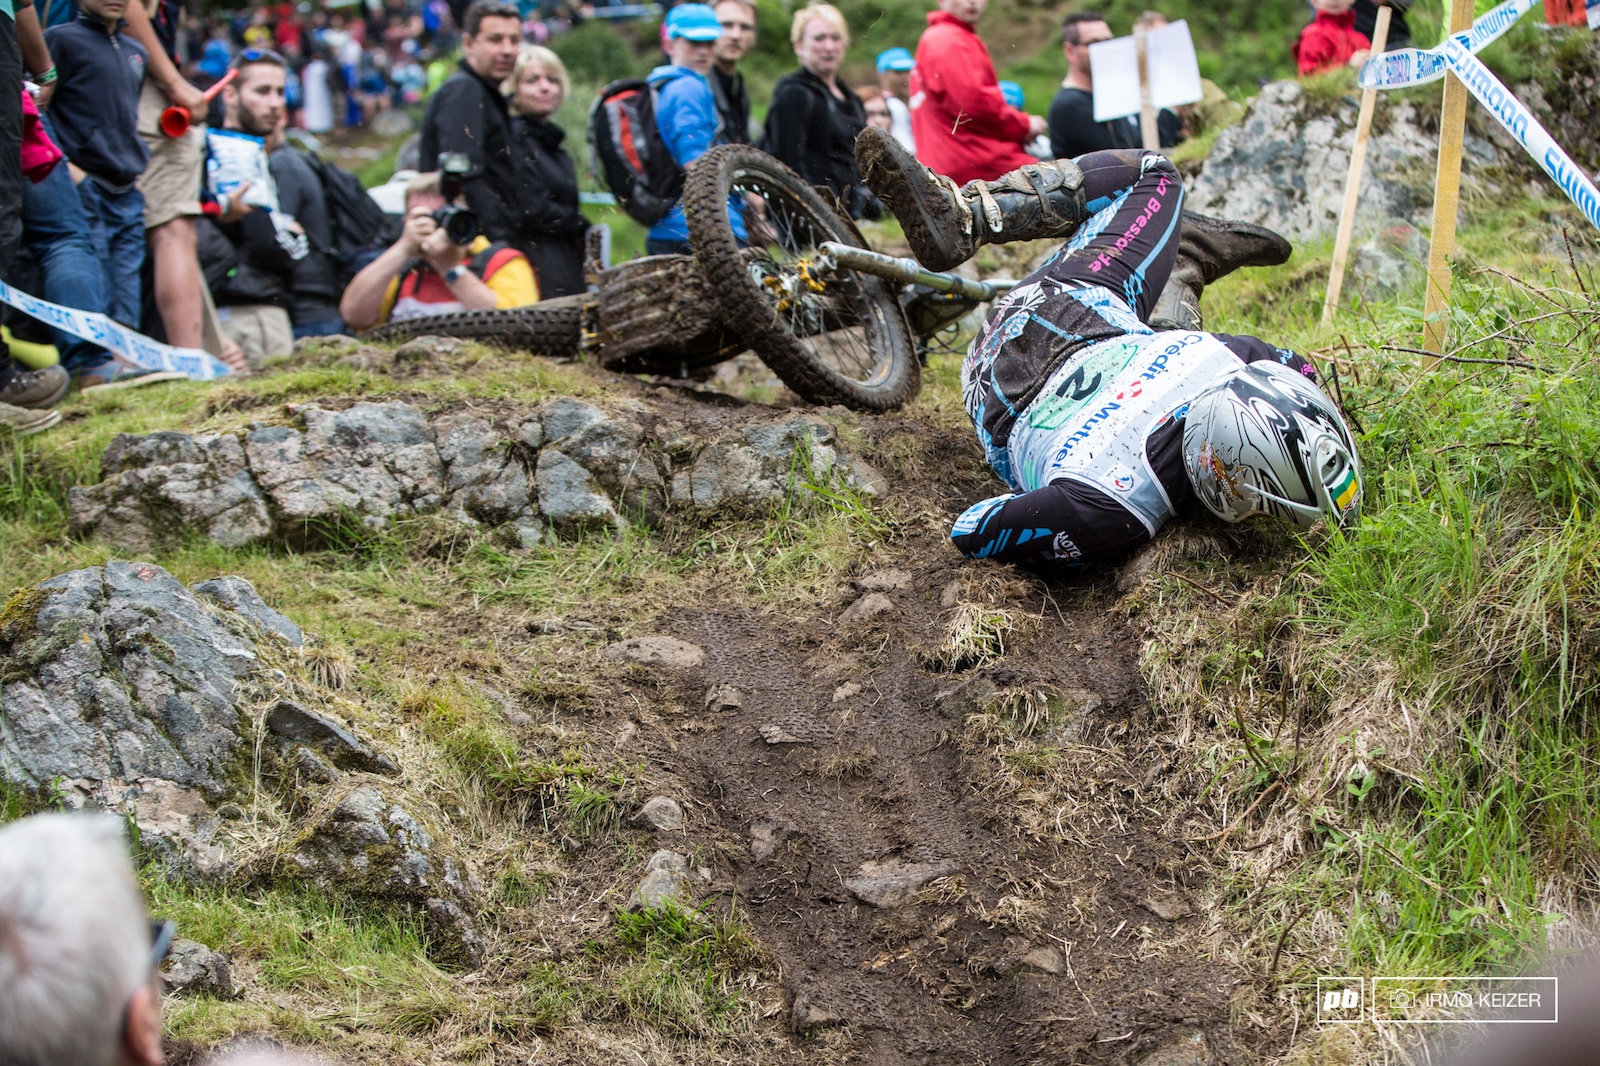 Not only mountainbikers crashed. The lead bike face planted with Absalon only thirty seconds behind.